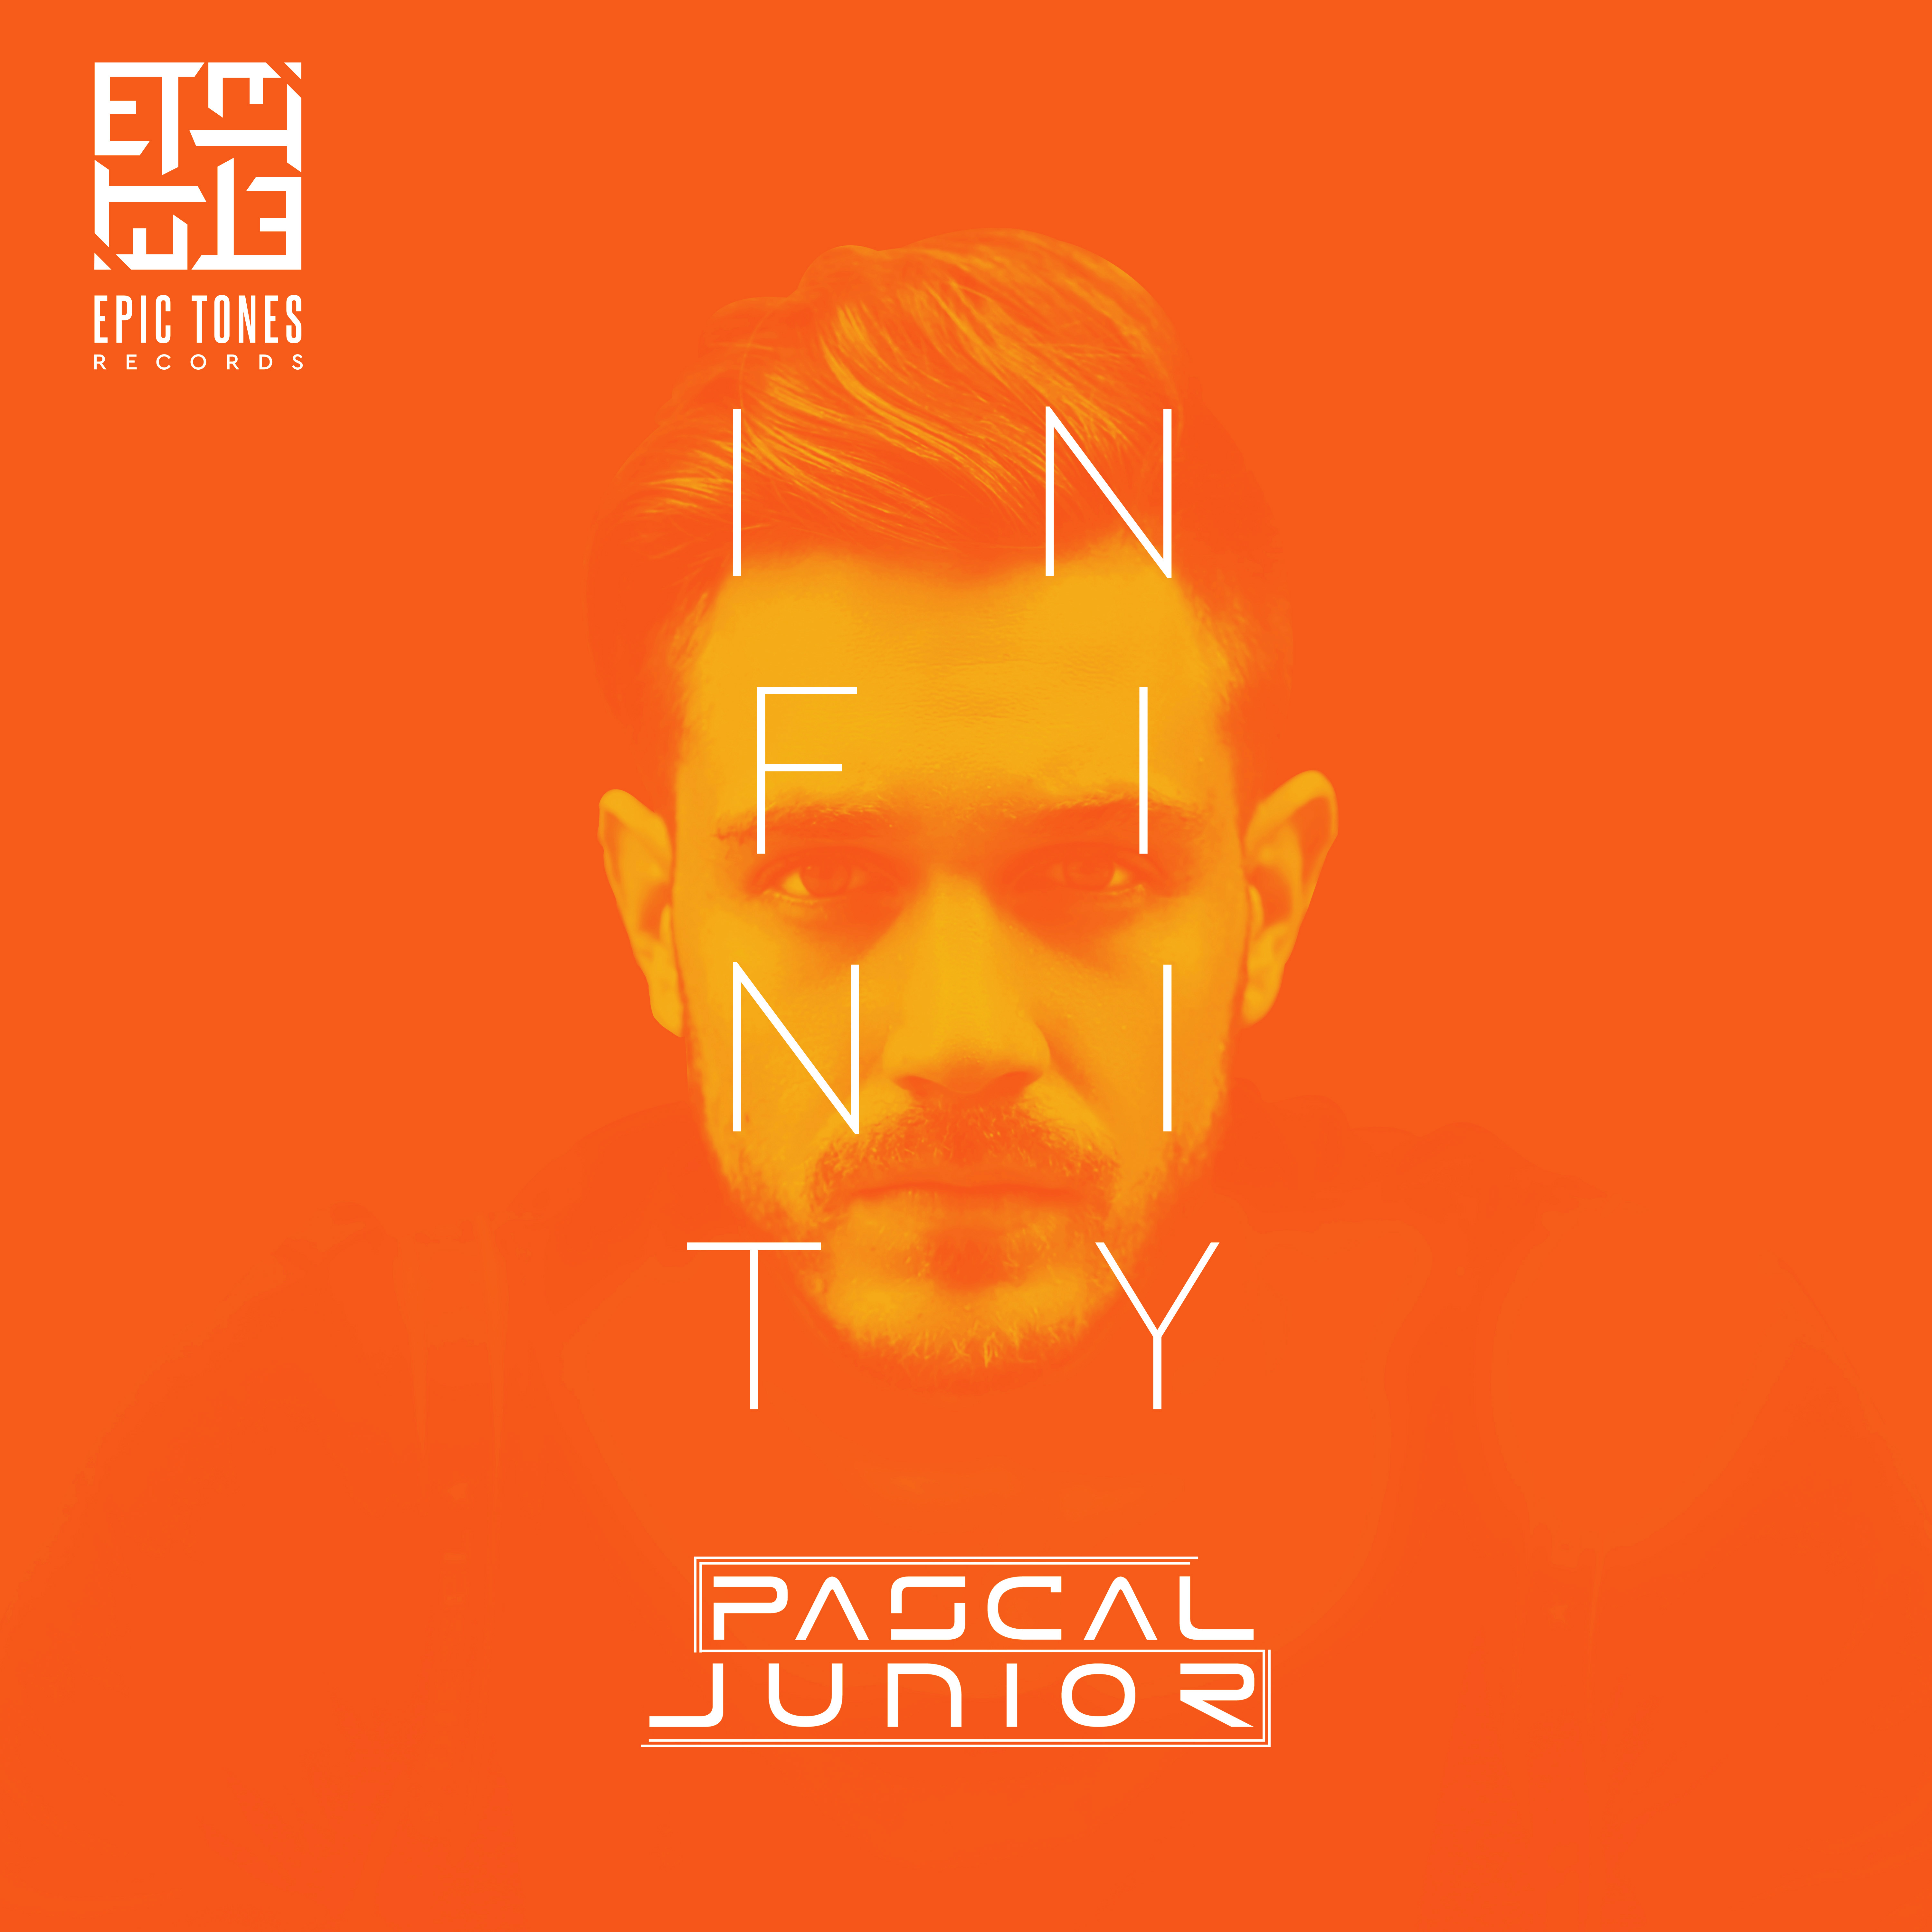 pascal_junior_-_infinity_epic_tones_records.jpg